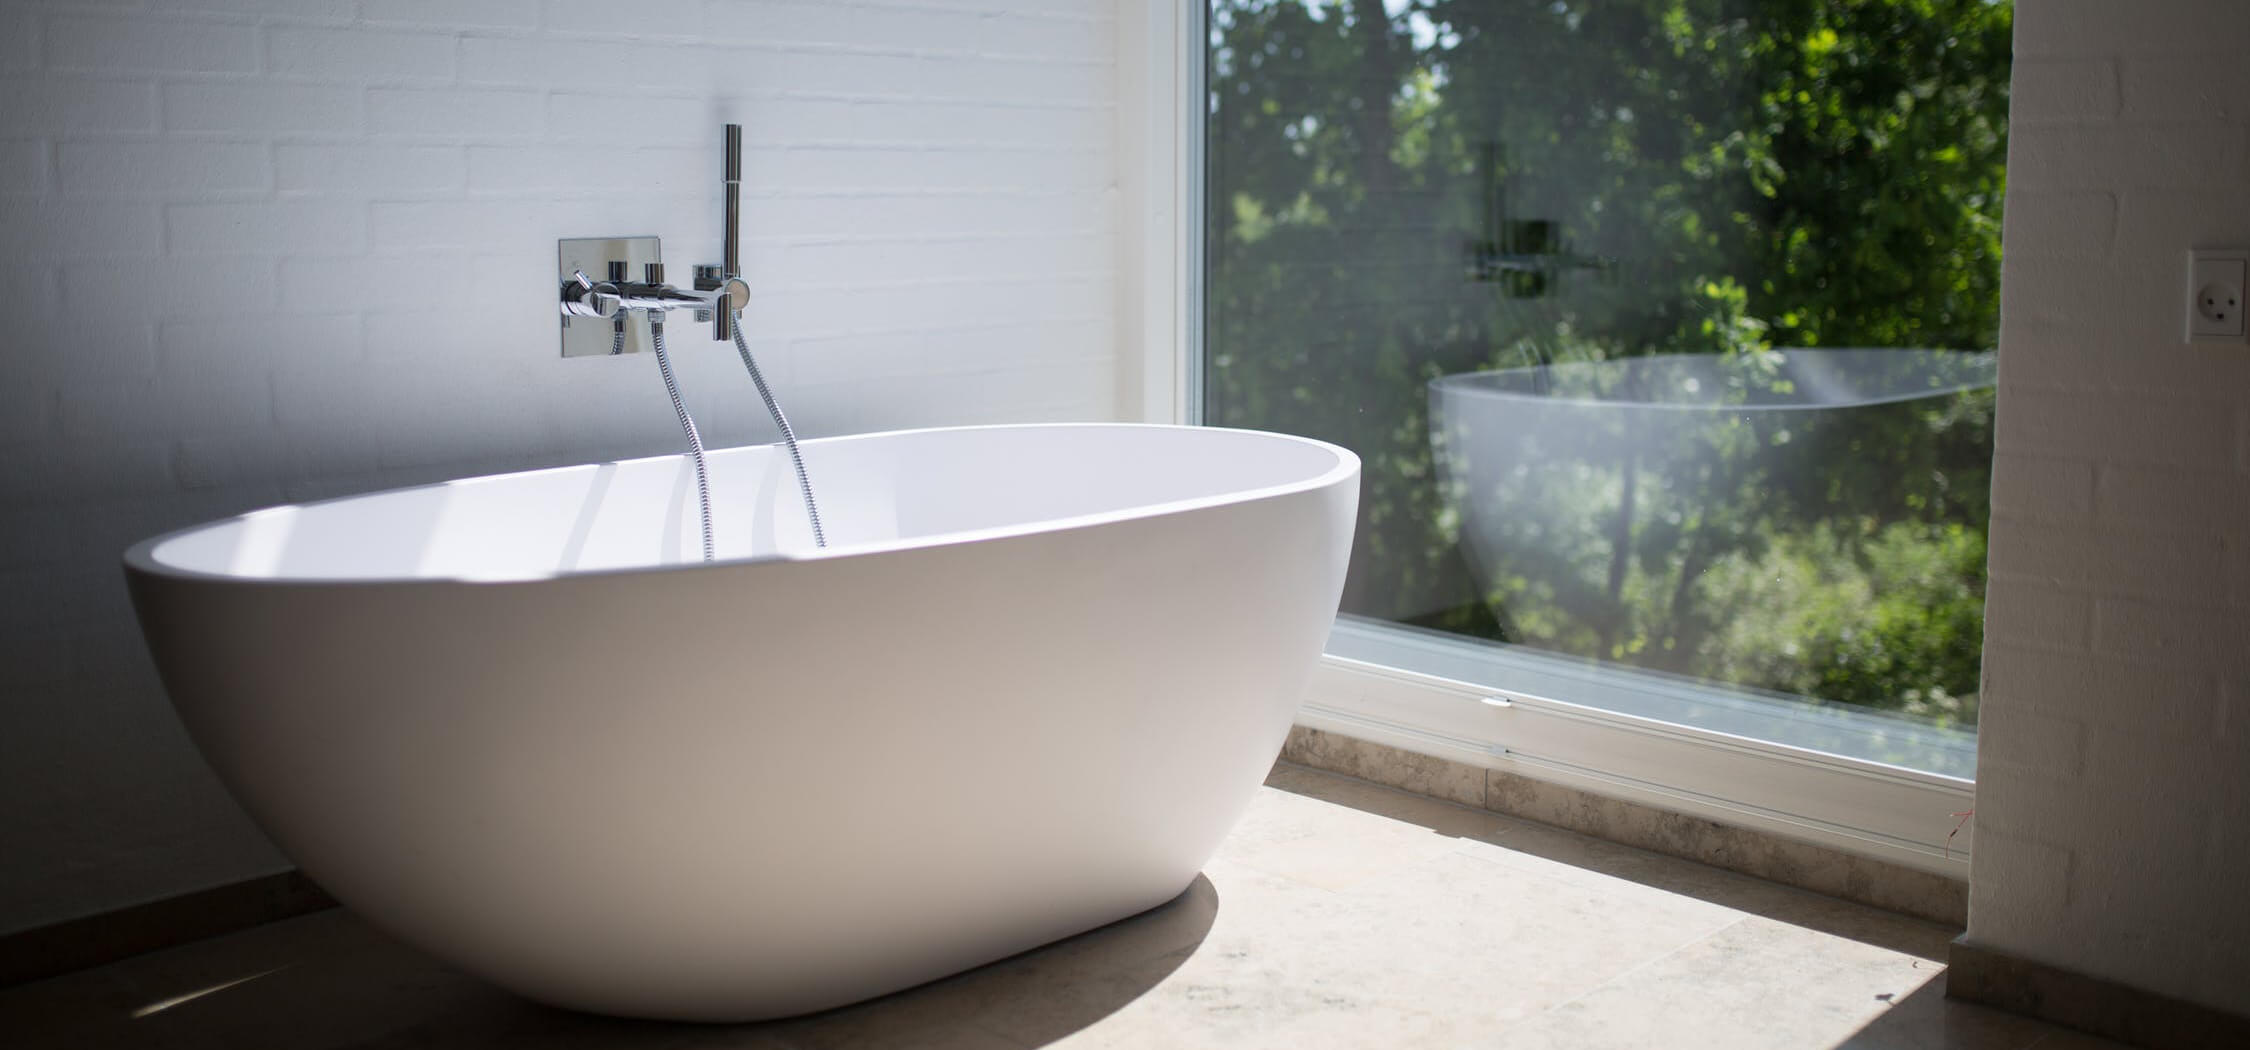 how-to-update-your-bathroom-on-the-cheap by-resurfacing-6.jpeg